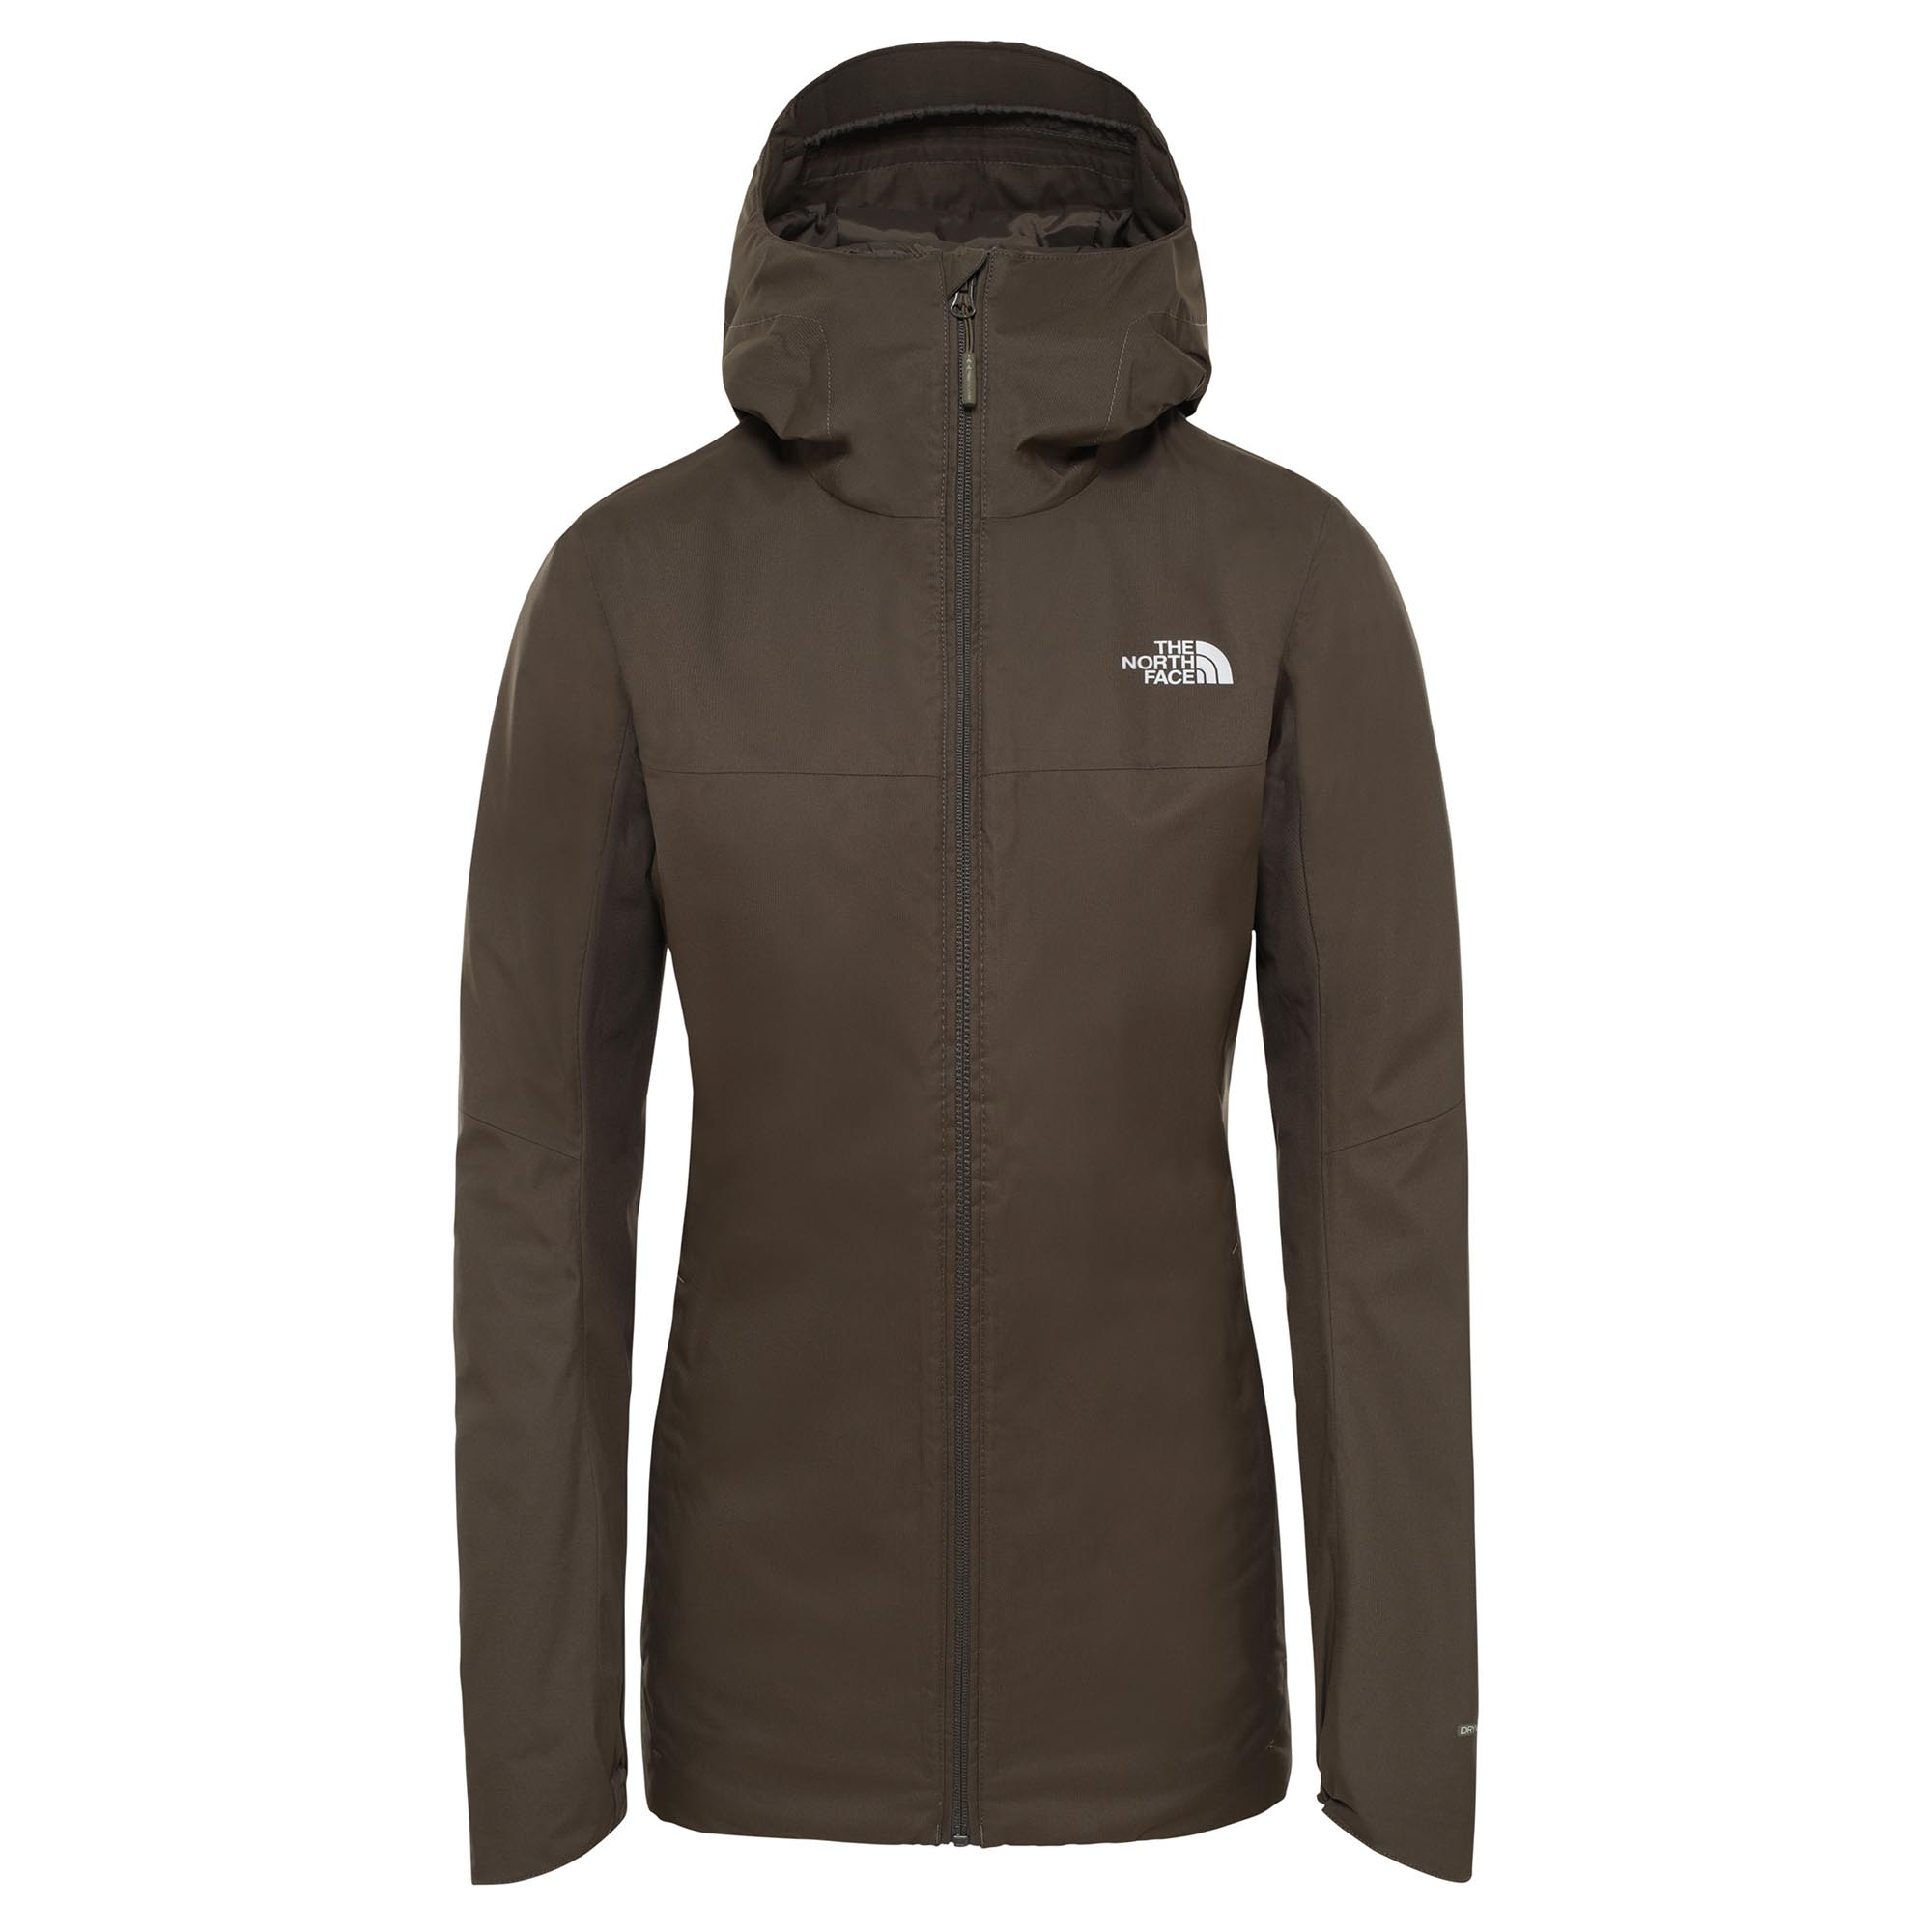 ᐅᐅ The North Face Winterjacke Damen Erfahrungen 2019 • Die